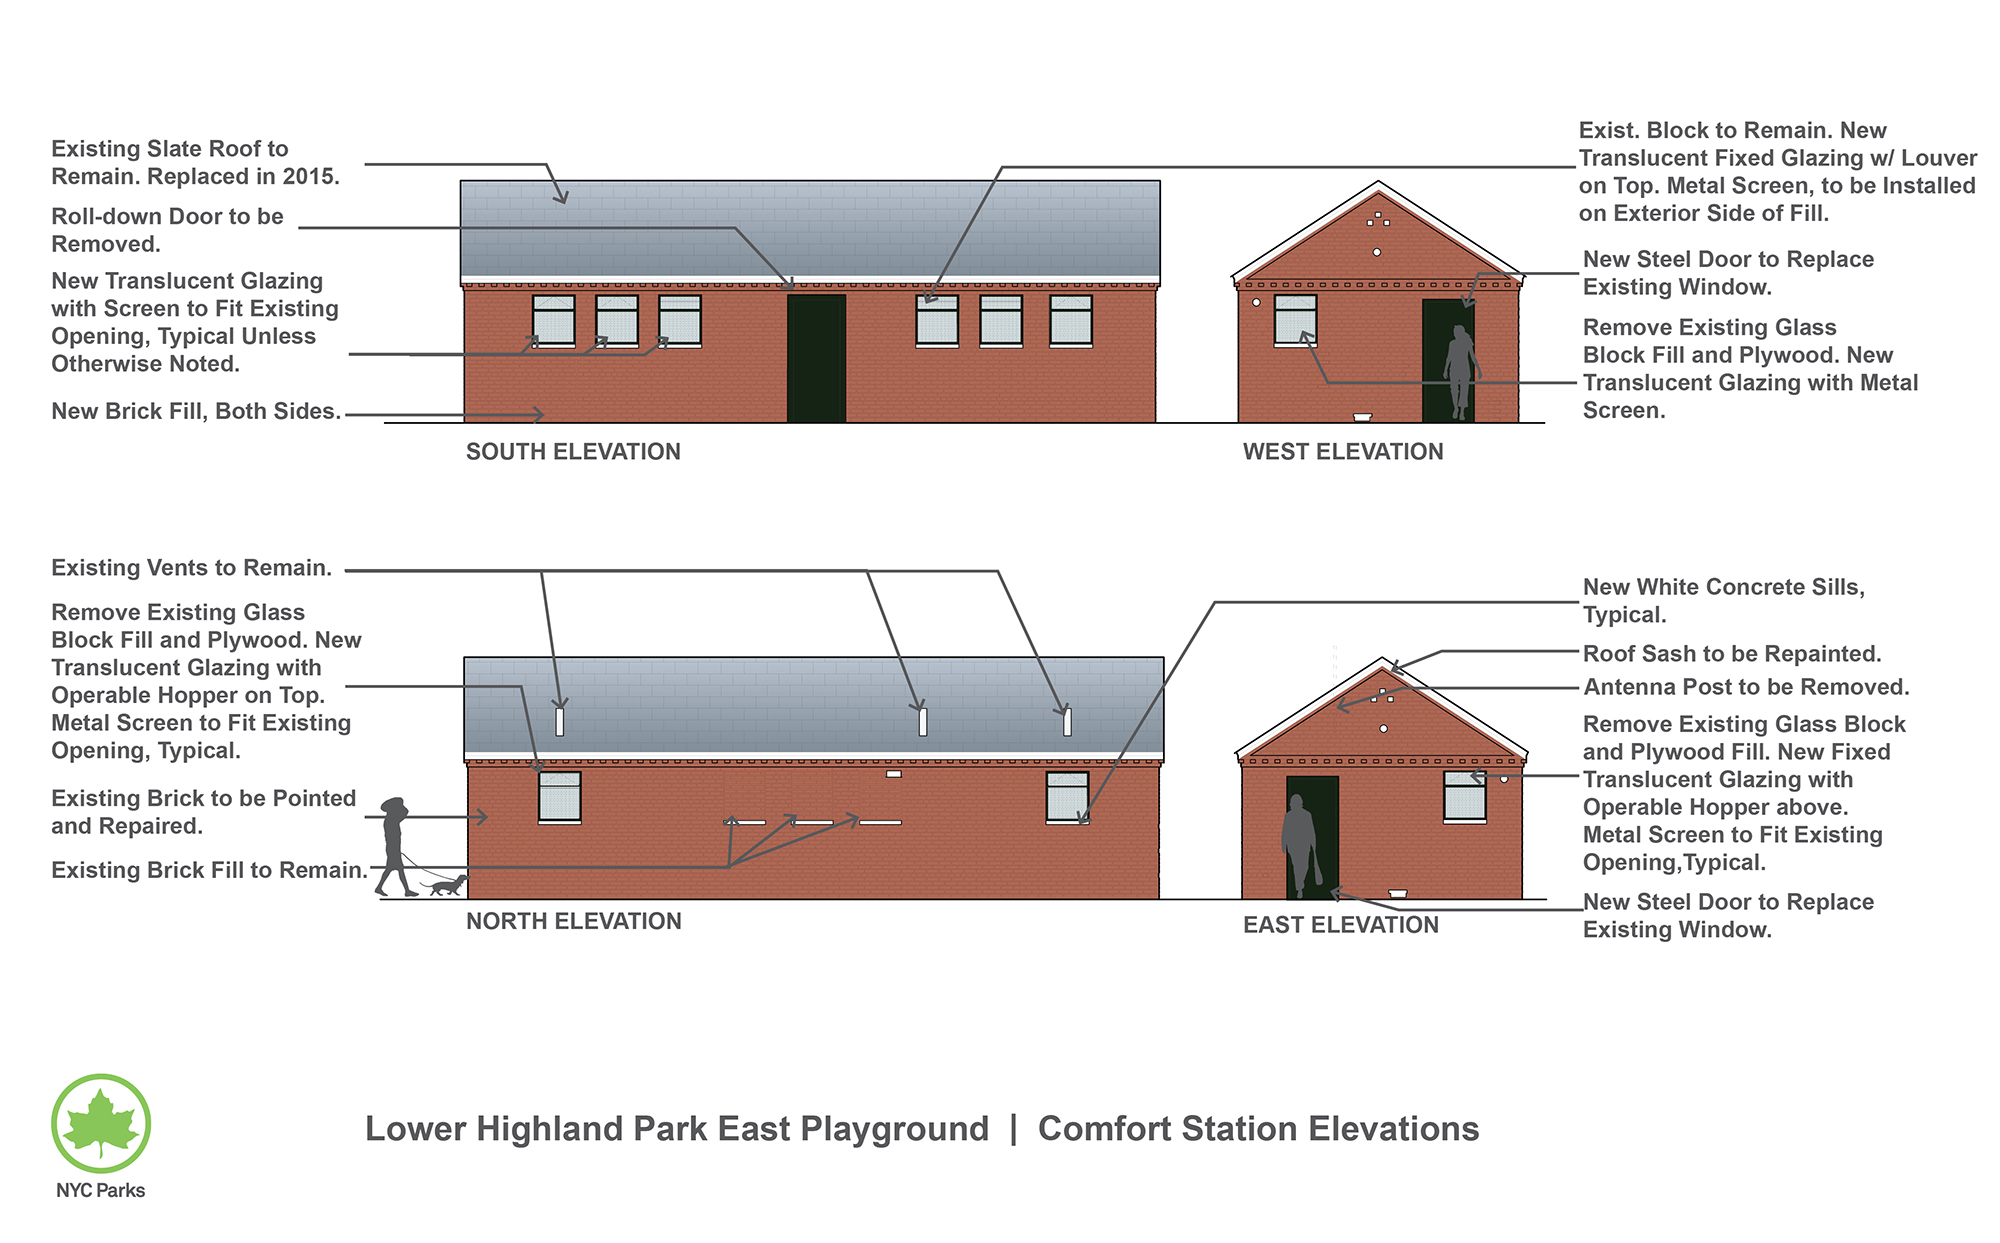 Design of Highland Park Lower East Playground Comfort Station Reconstruction